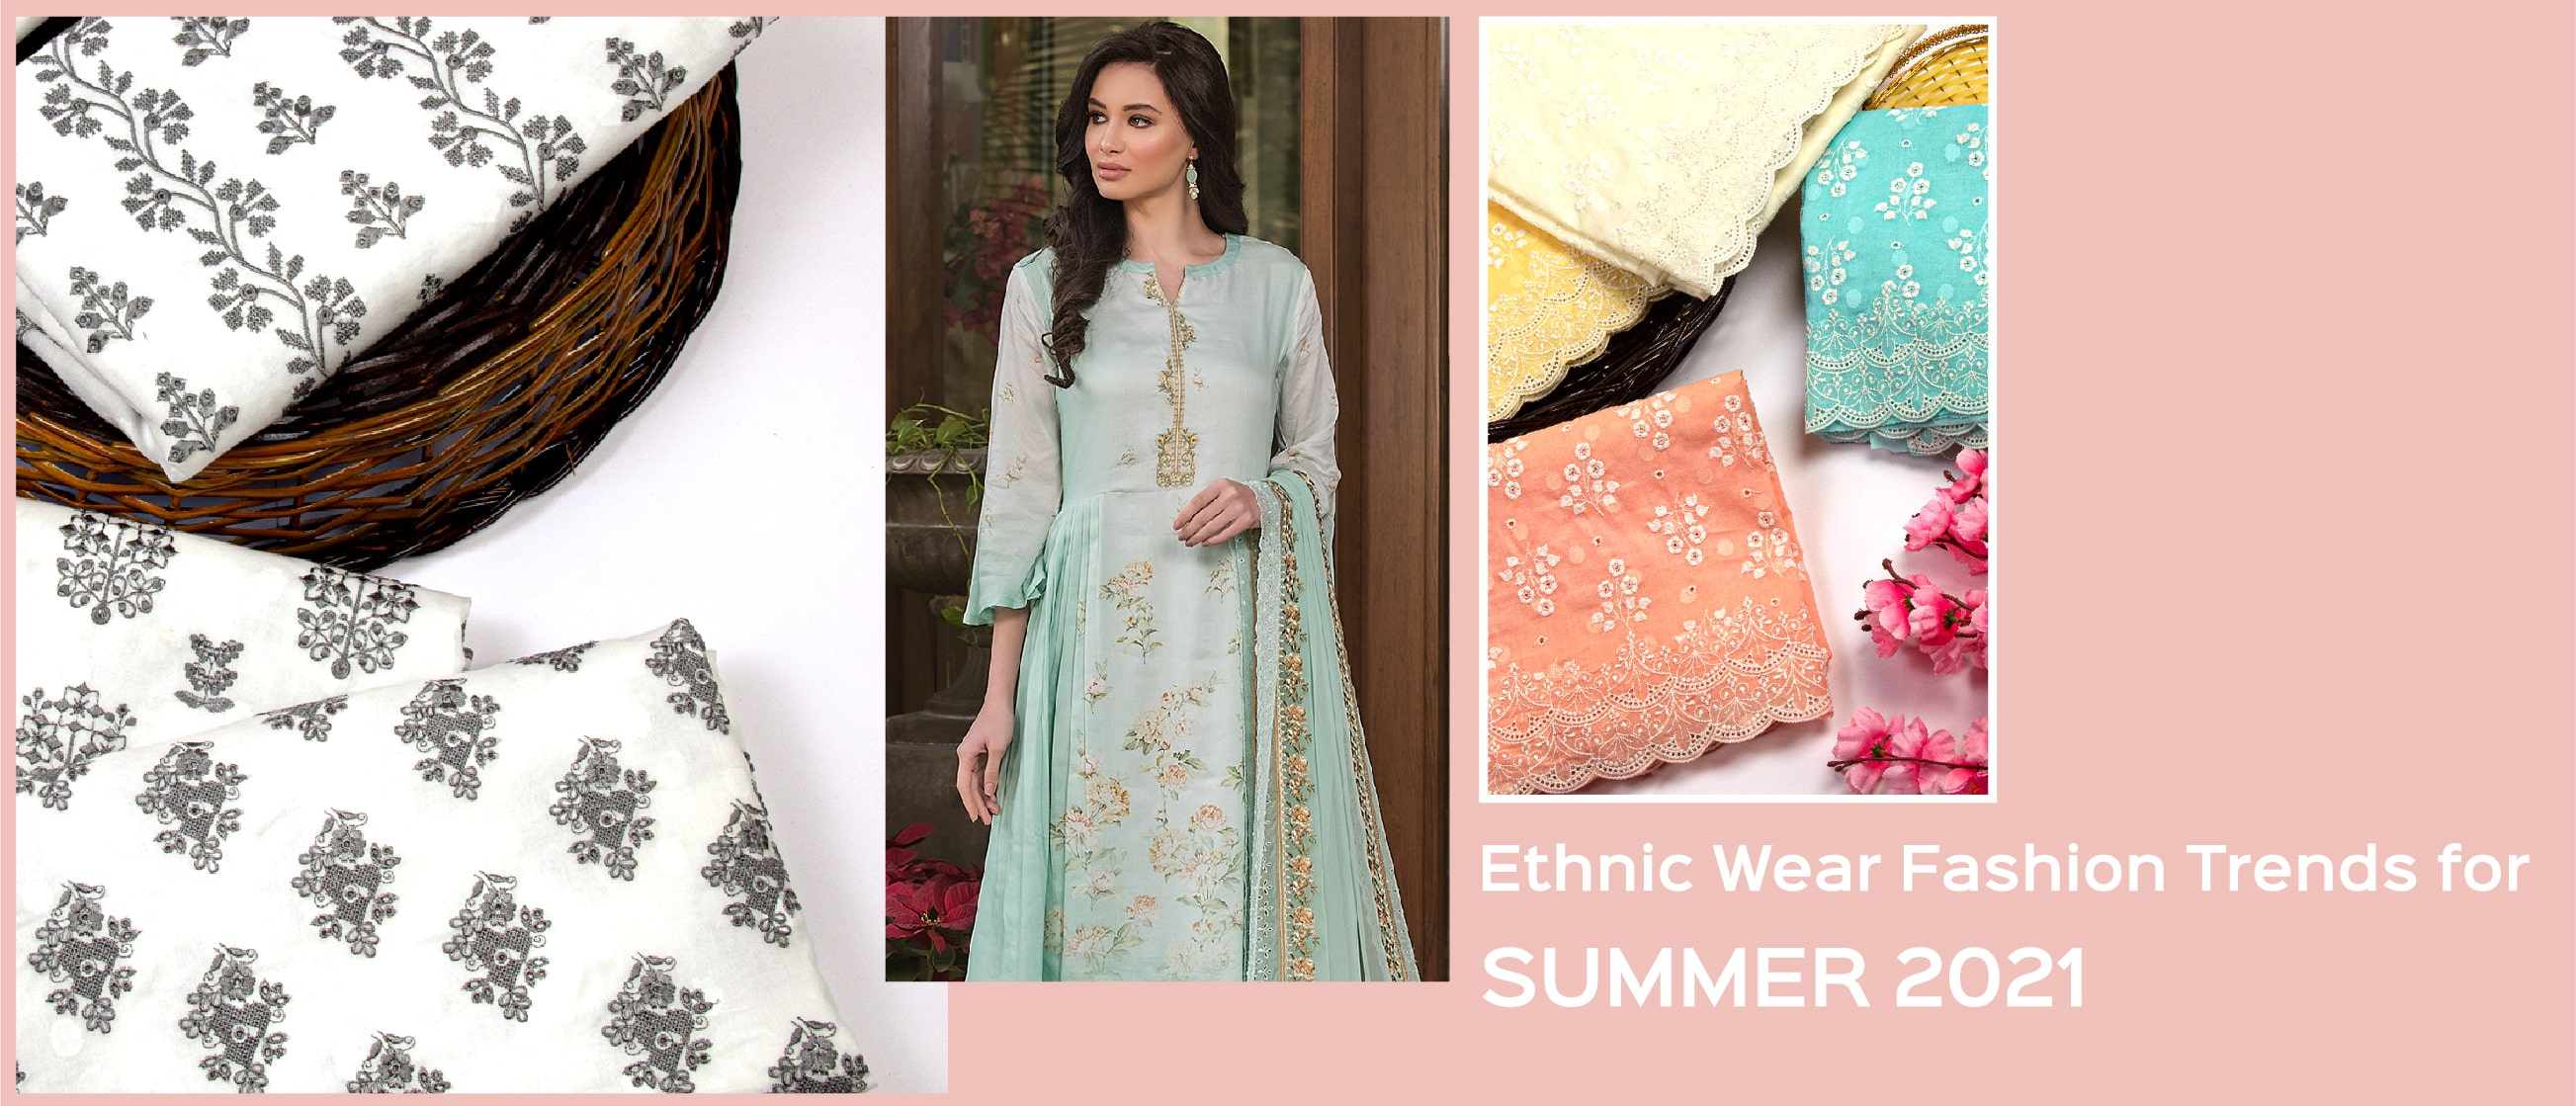 Ethnic Wear Fashion Trends for Summer 2021